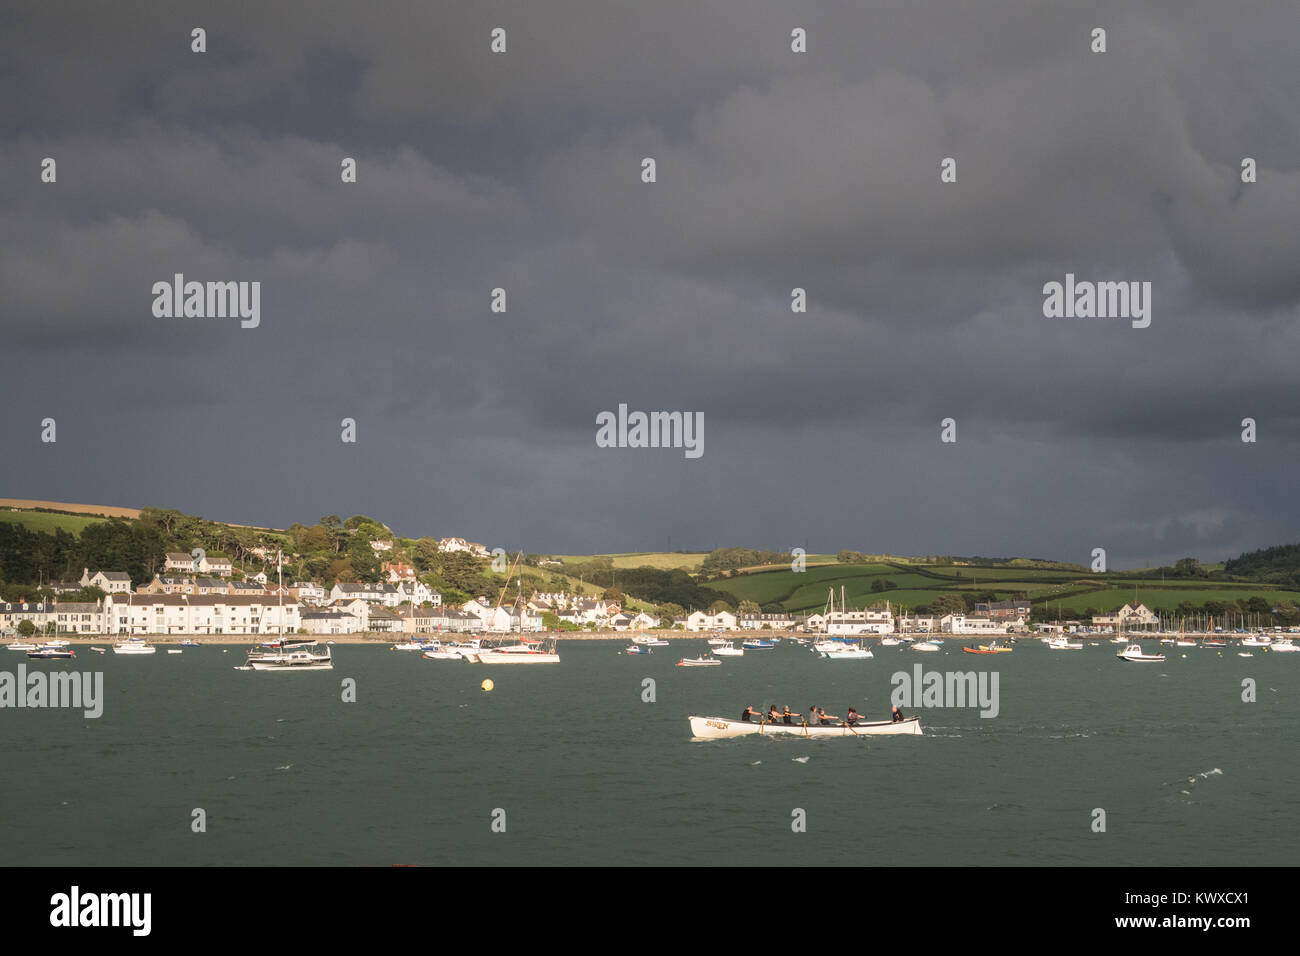 a gig boat rows down the river Torridge in Devon. Instow is in the background. Taken from AppledoreRoy Riley caption - Stock Image